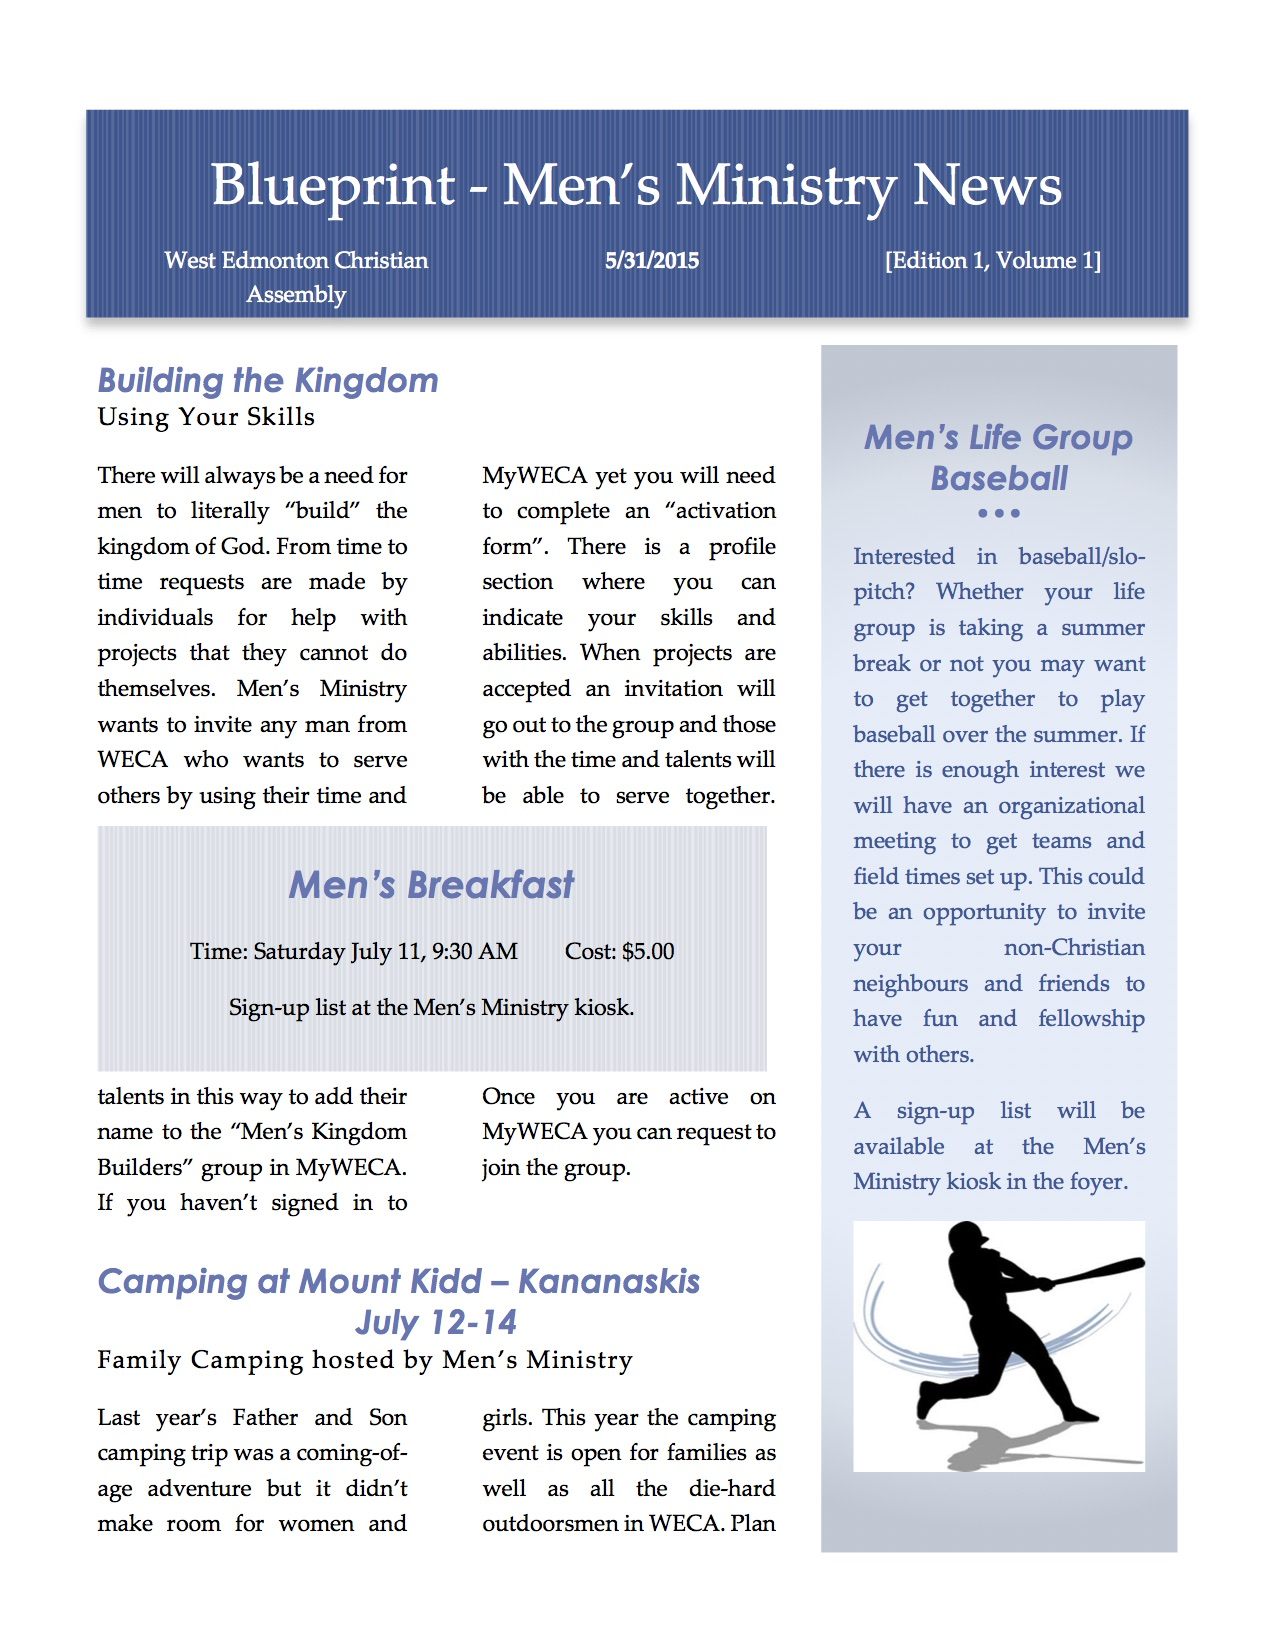 Mens events west edmonton christian assembly blueprint newsletter blueprint newsletter2 malvernweather Images